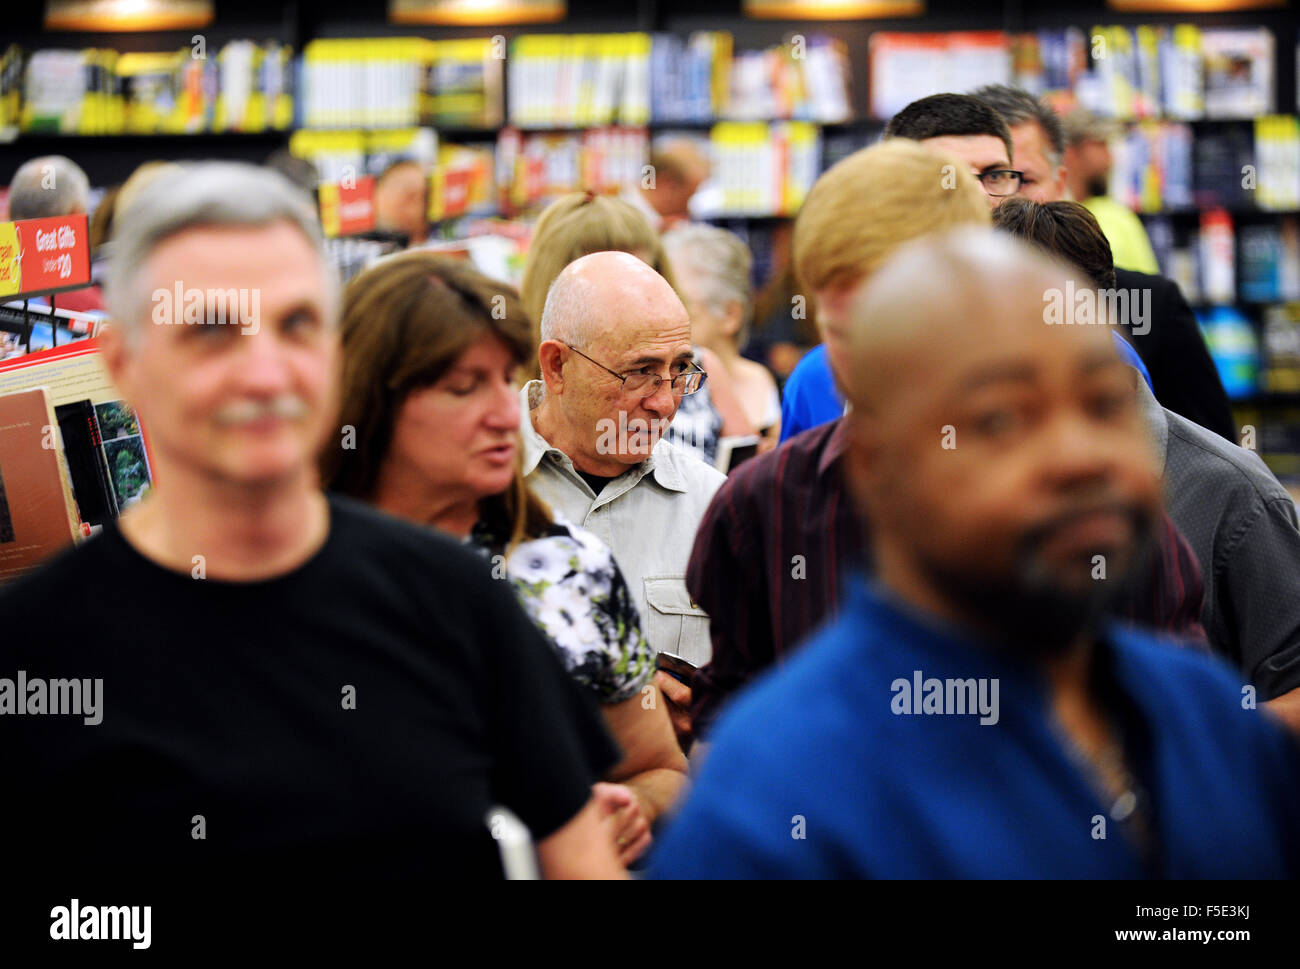 Kissimmee, Florida, USA. 02nd Nov, 2015. People wait in line at the Books-A-Million store in Kissimmee, Florida - Stock Image